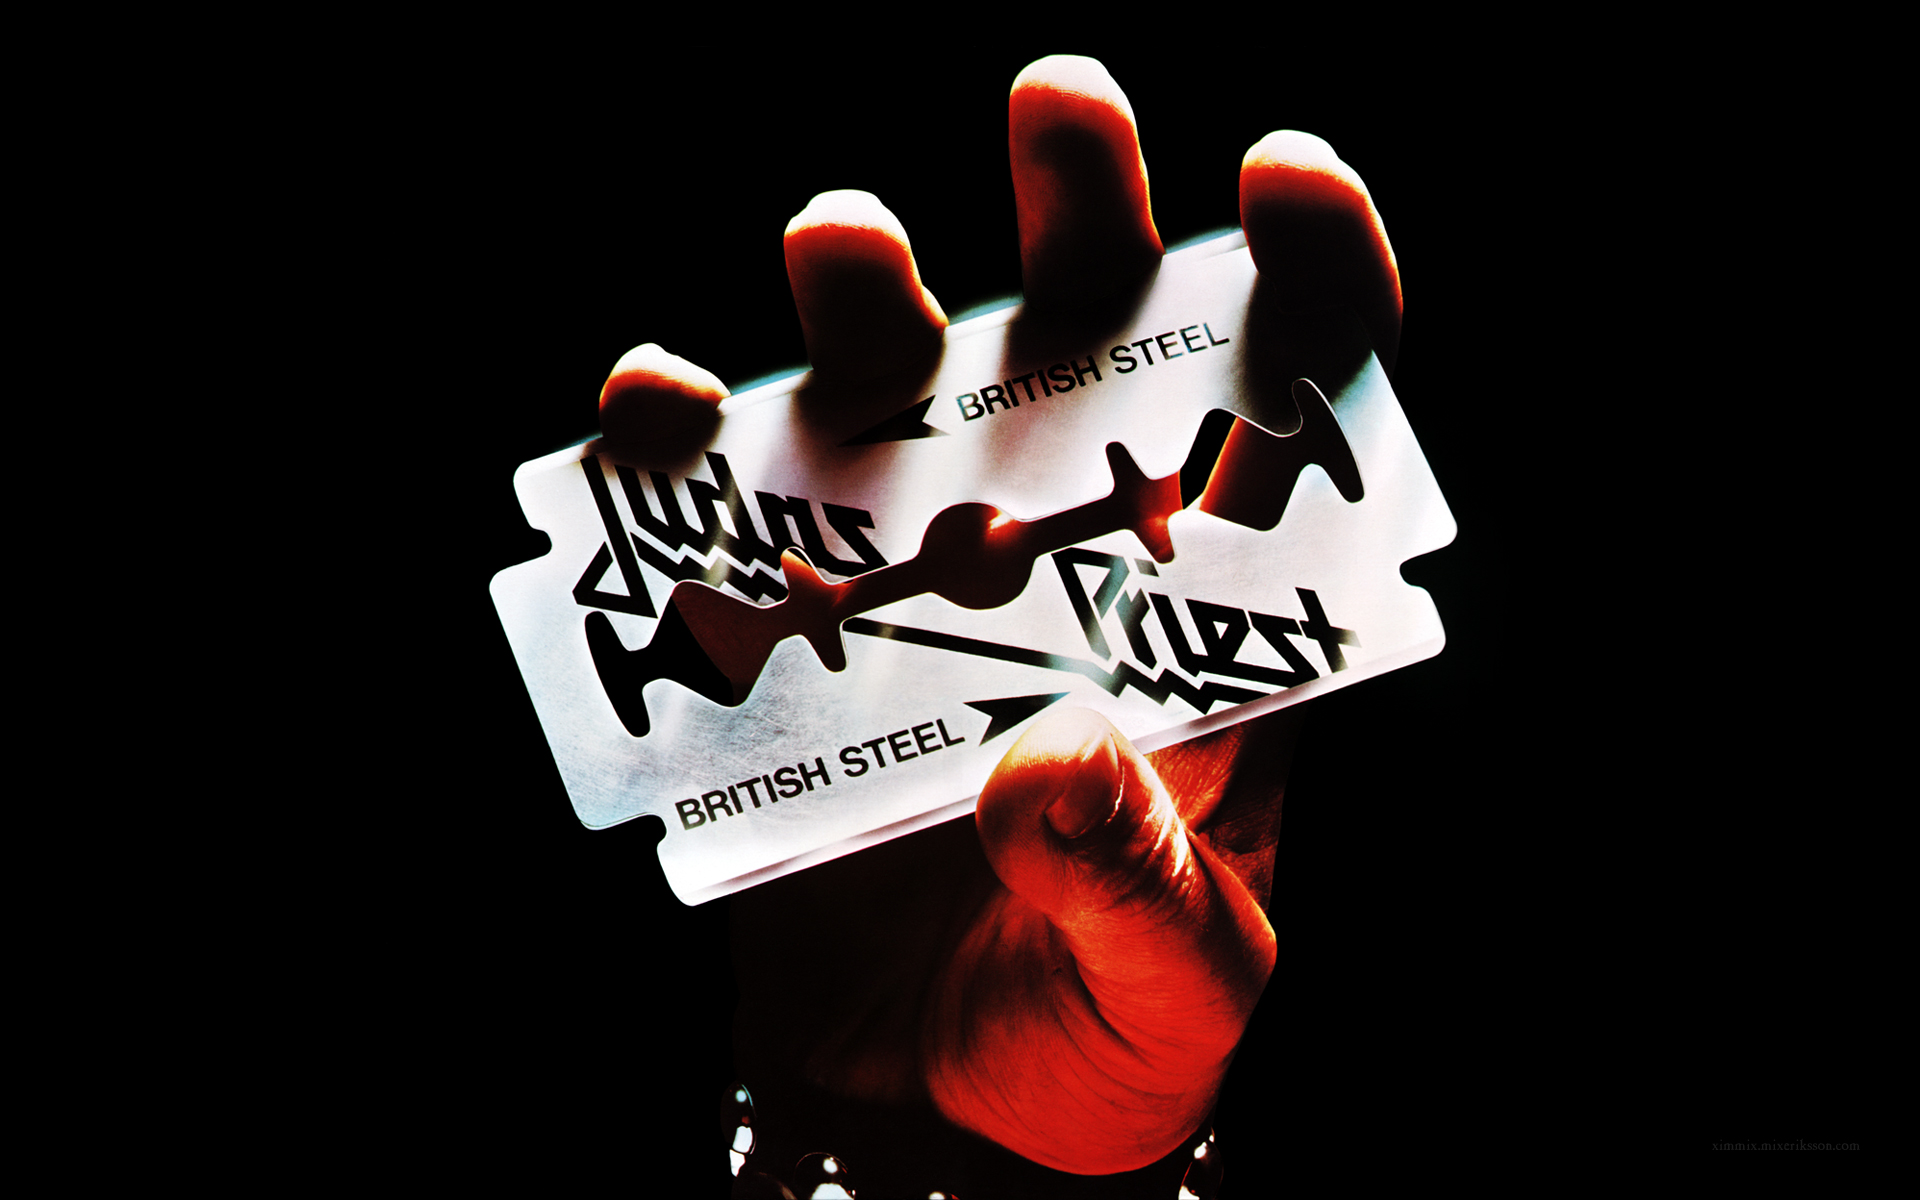 Judas Priest Computer Wallpapers, Desktop Backgrounds ...